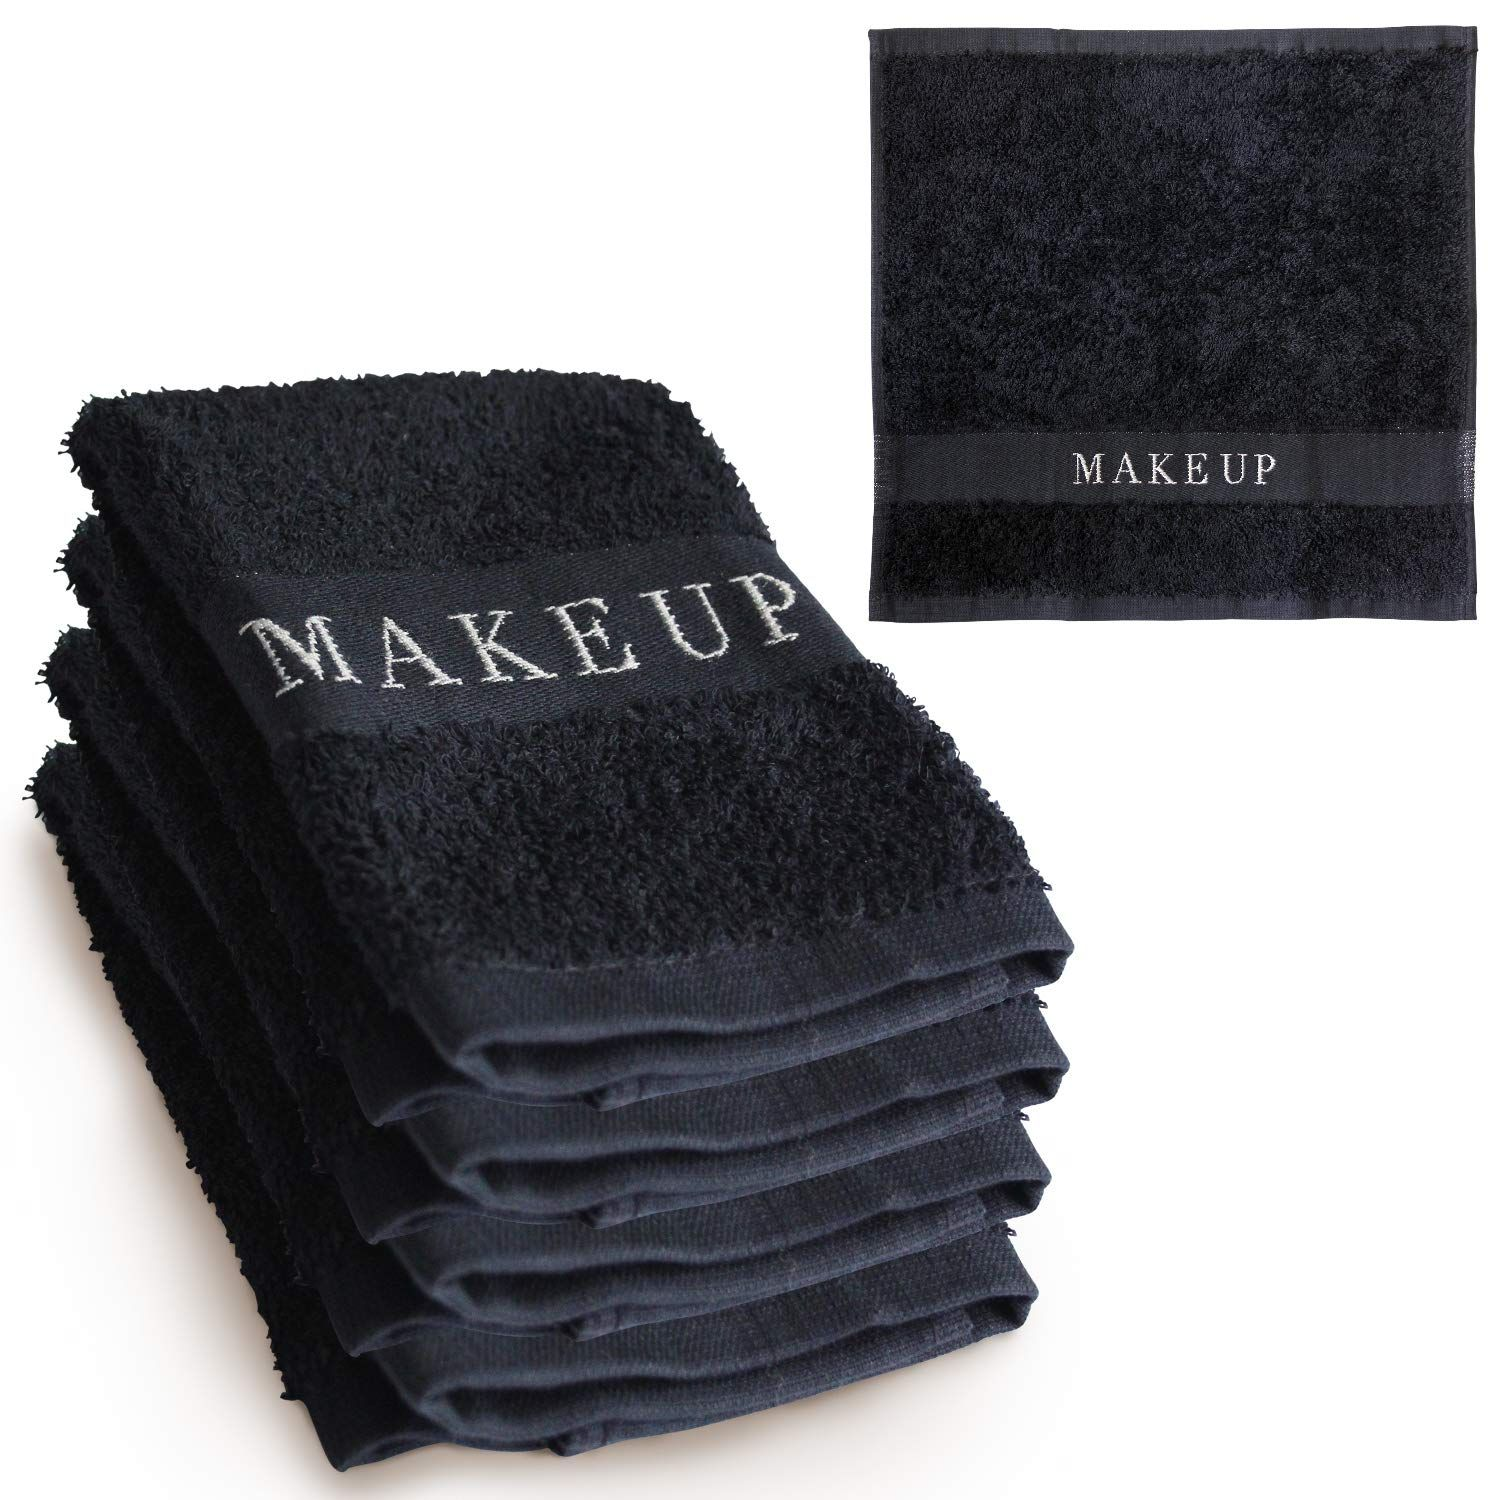 The Little Black Towel Makeup Remover Cloth (4 Pack) Plush